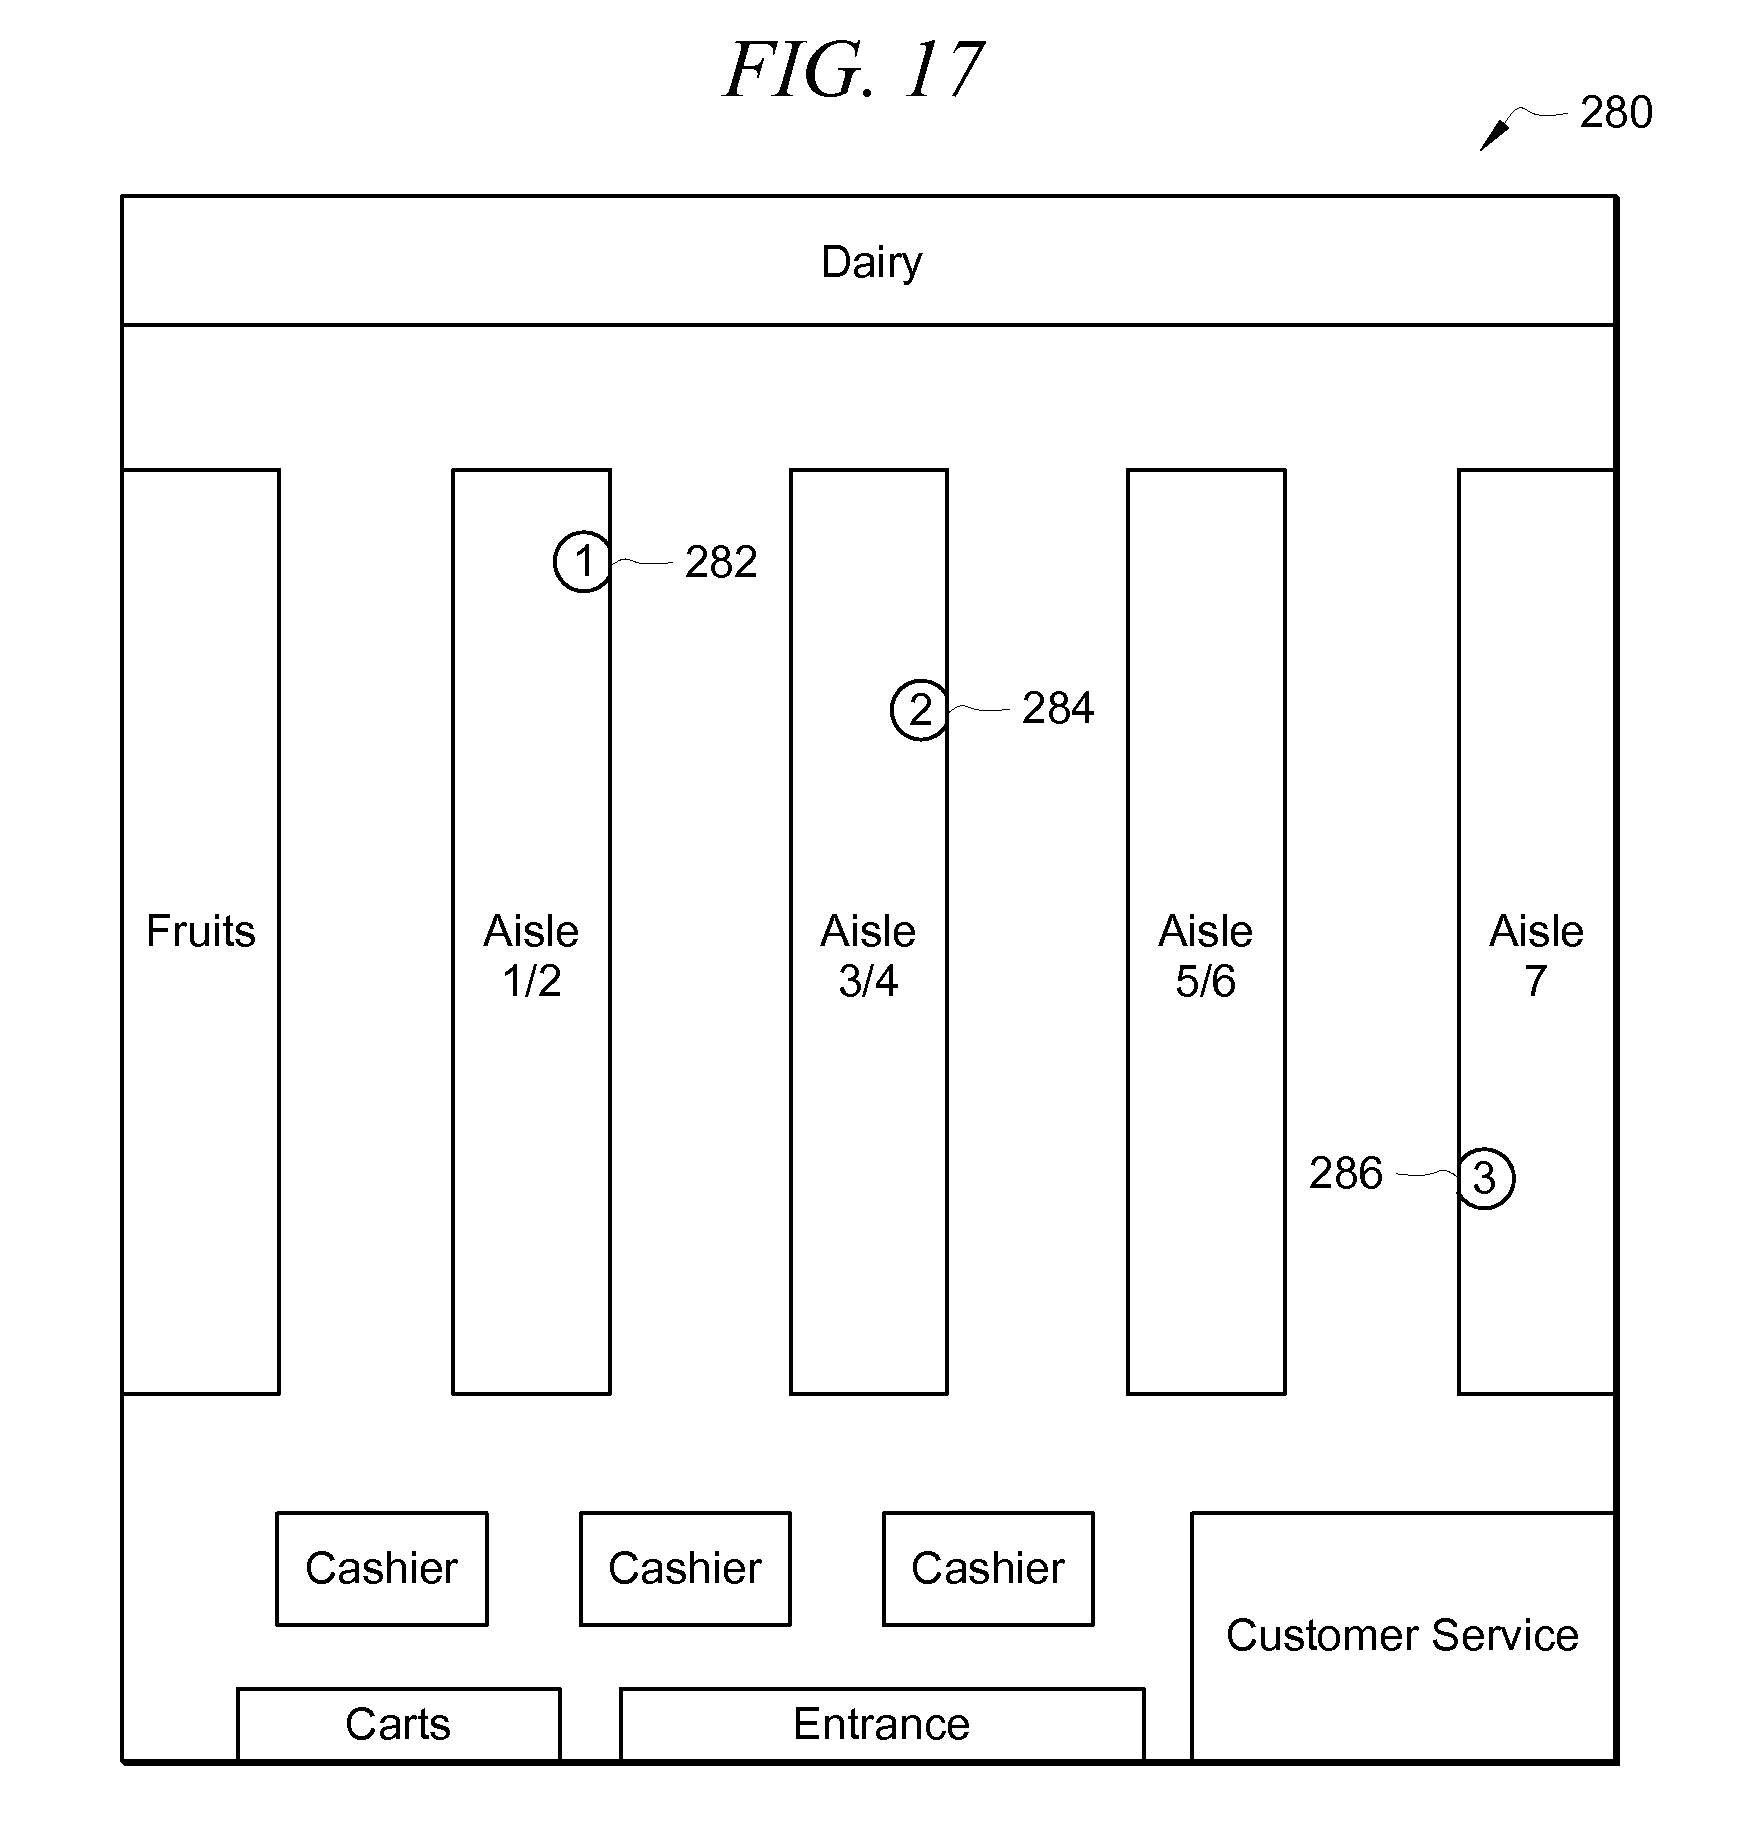 patent assignment database